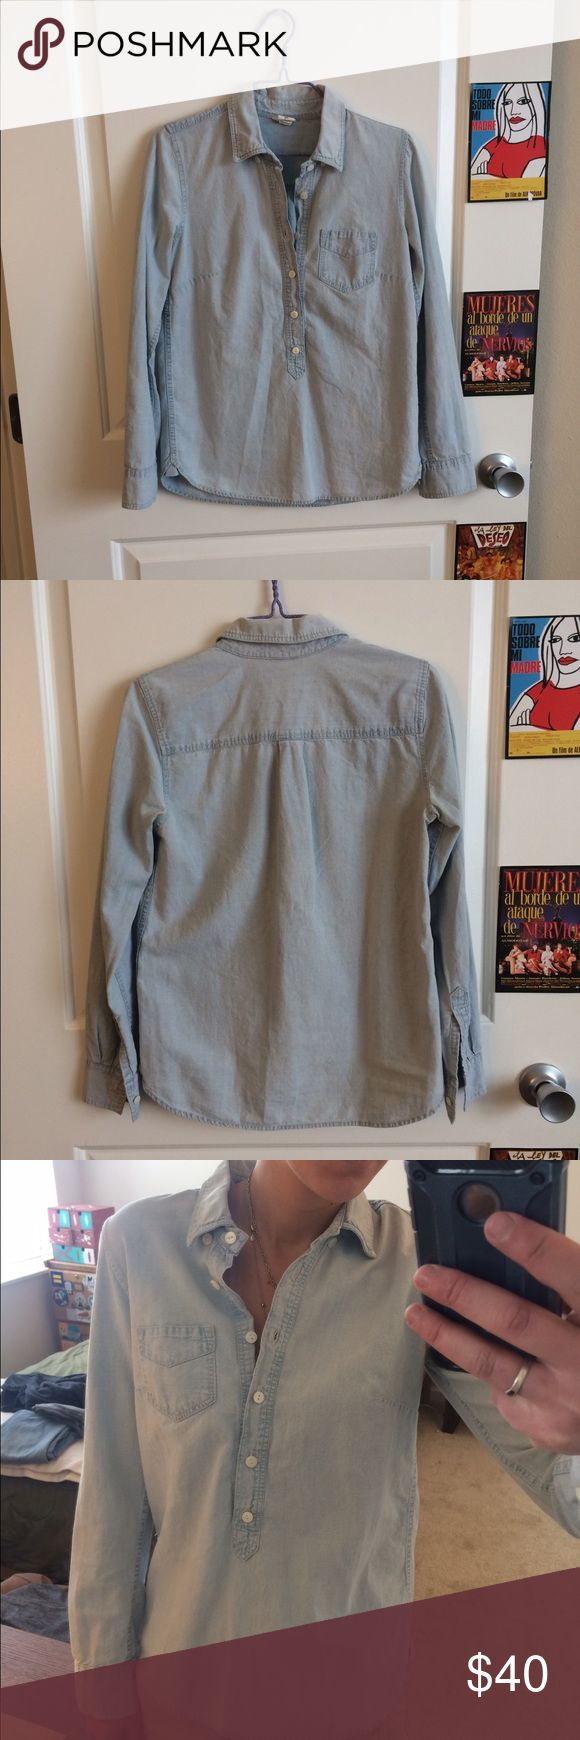 J. Crew Button-Down Denim Long Sleeve Top - XXS J. Crew Long Sleeve collared top that buttons halfway down. Cotton in a light blue denim color. Great casual top. Worn moderately, but great condition. Not sure if it's a flaw, but the fabric around the top buttons crinkles so you have to iron it if you want them out. Size XXS. Fits like an XS or S J. Crew Tops Button Down Shirts